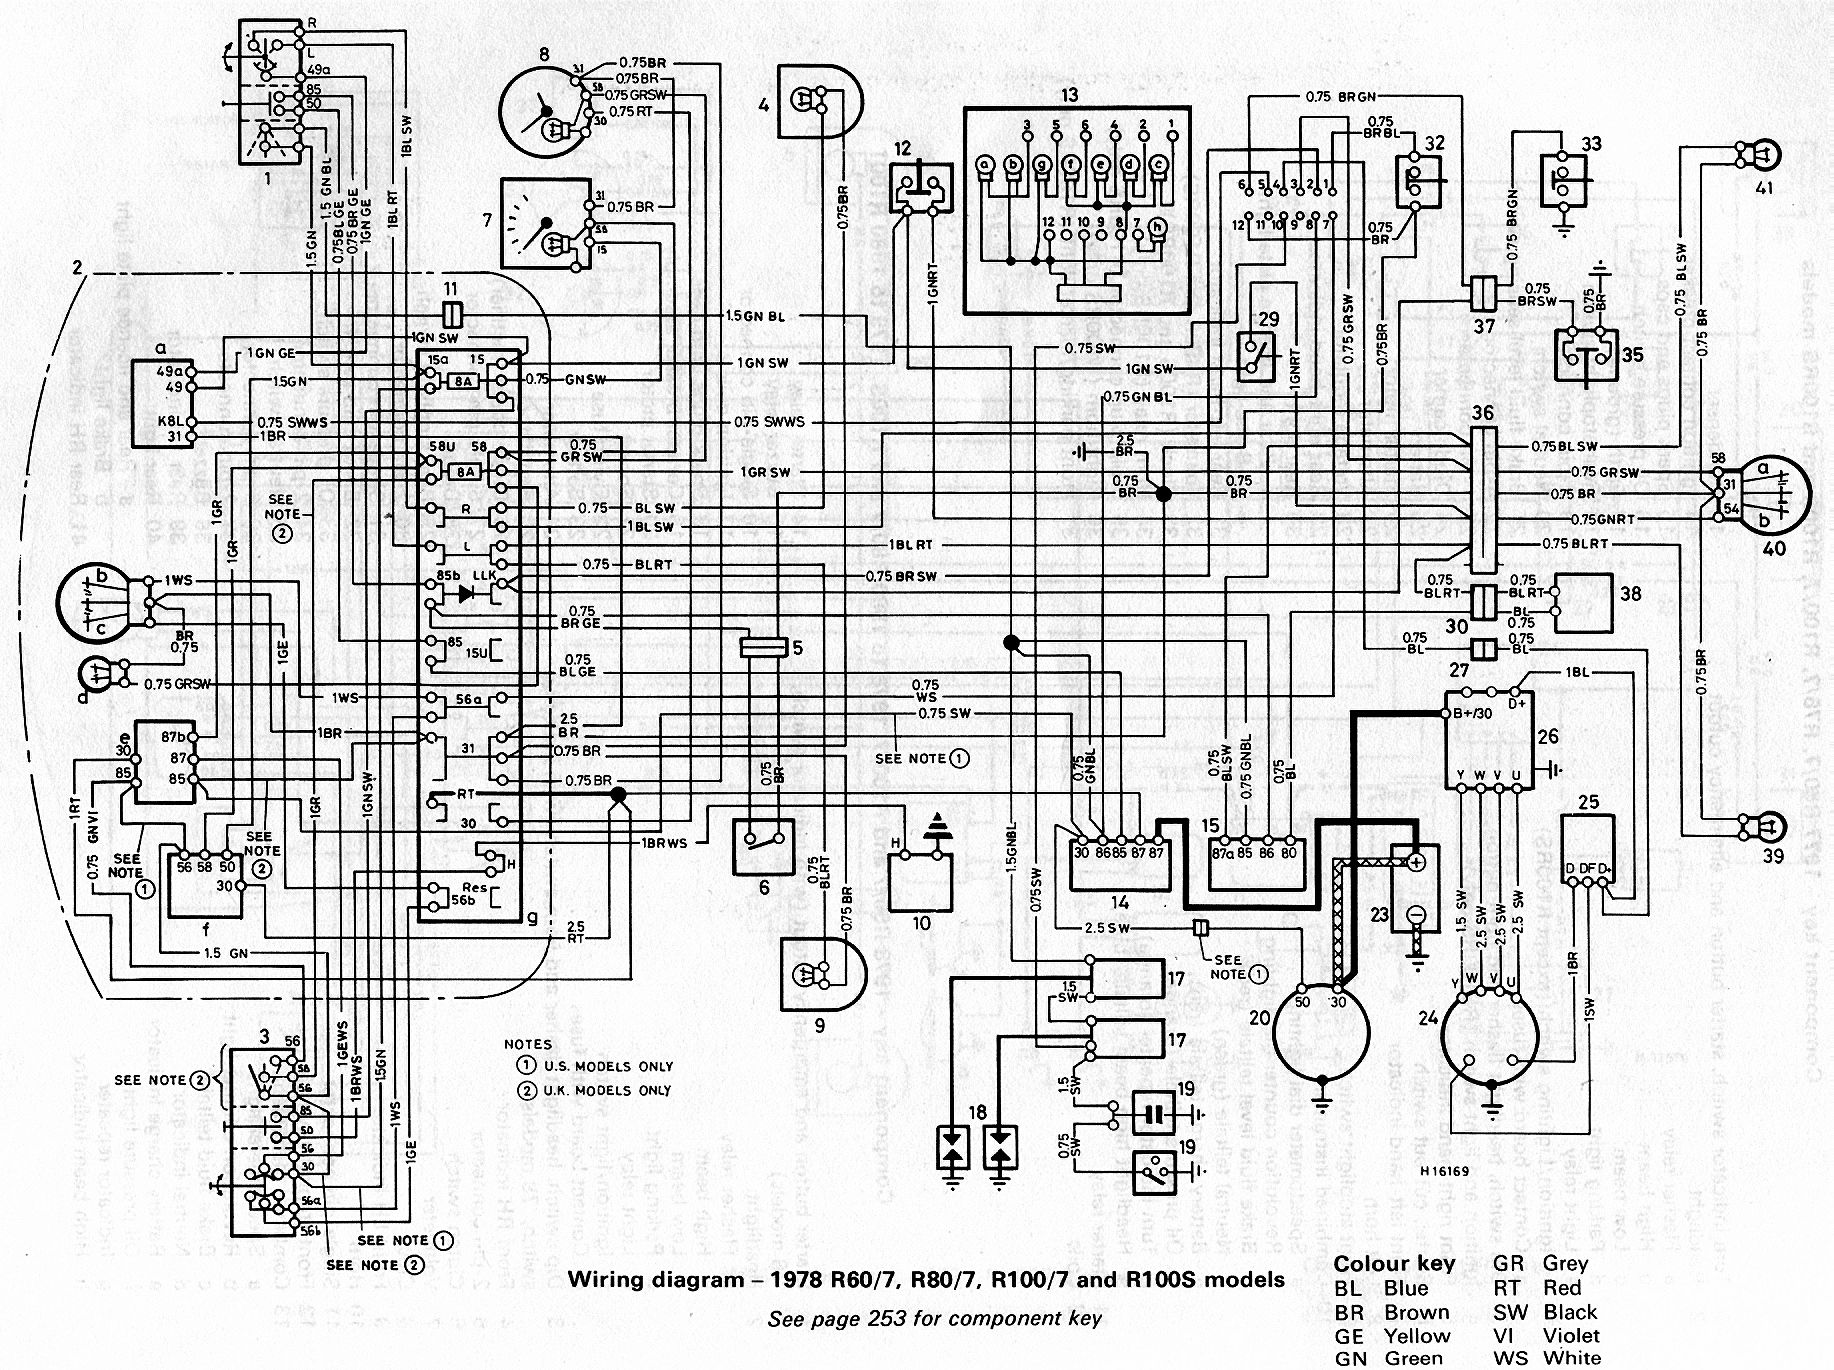 wiring diagram bmw r80 wiring image wiring diagram bmw r45 wiring bmw auto wiring diagram schematic on wiring diagram bmw r80